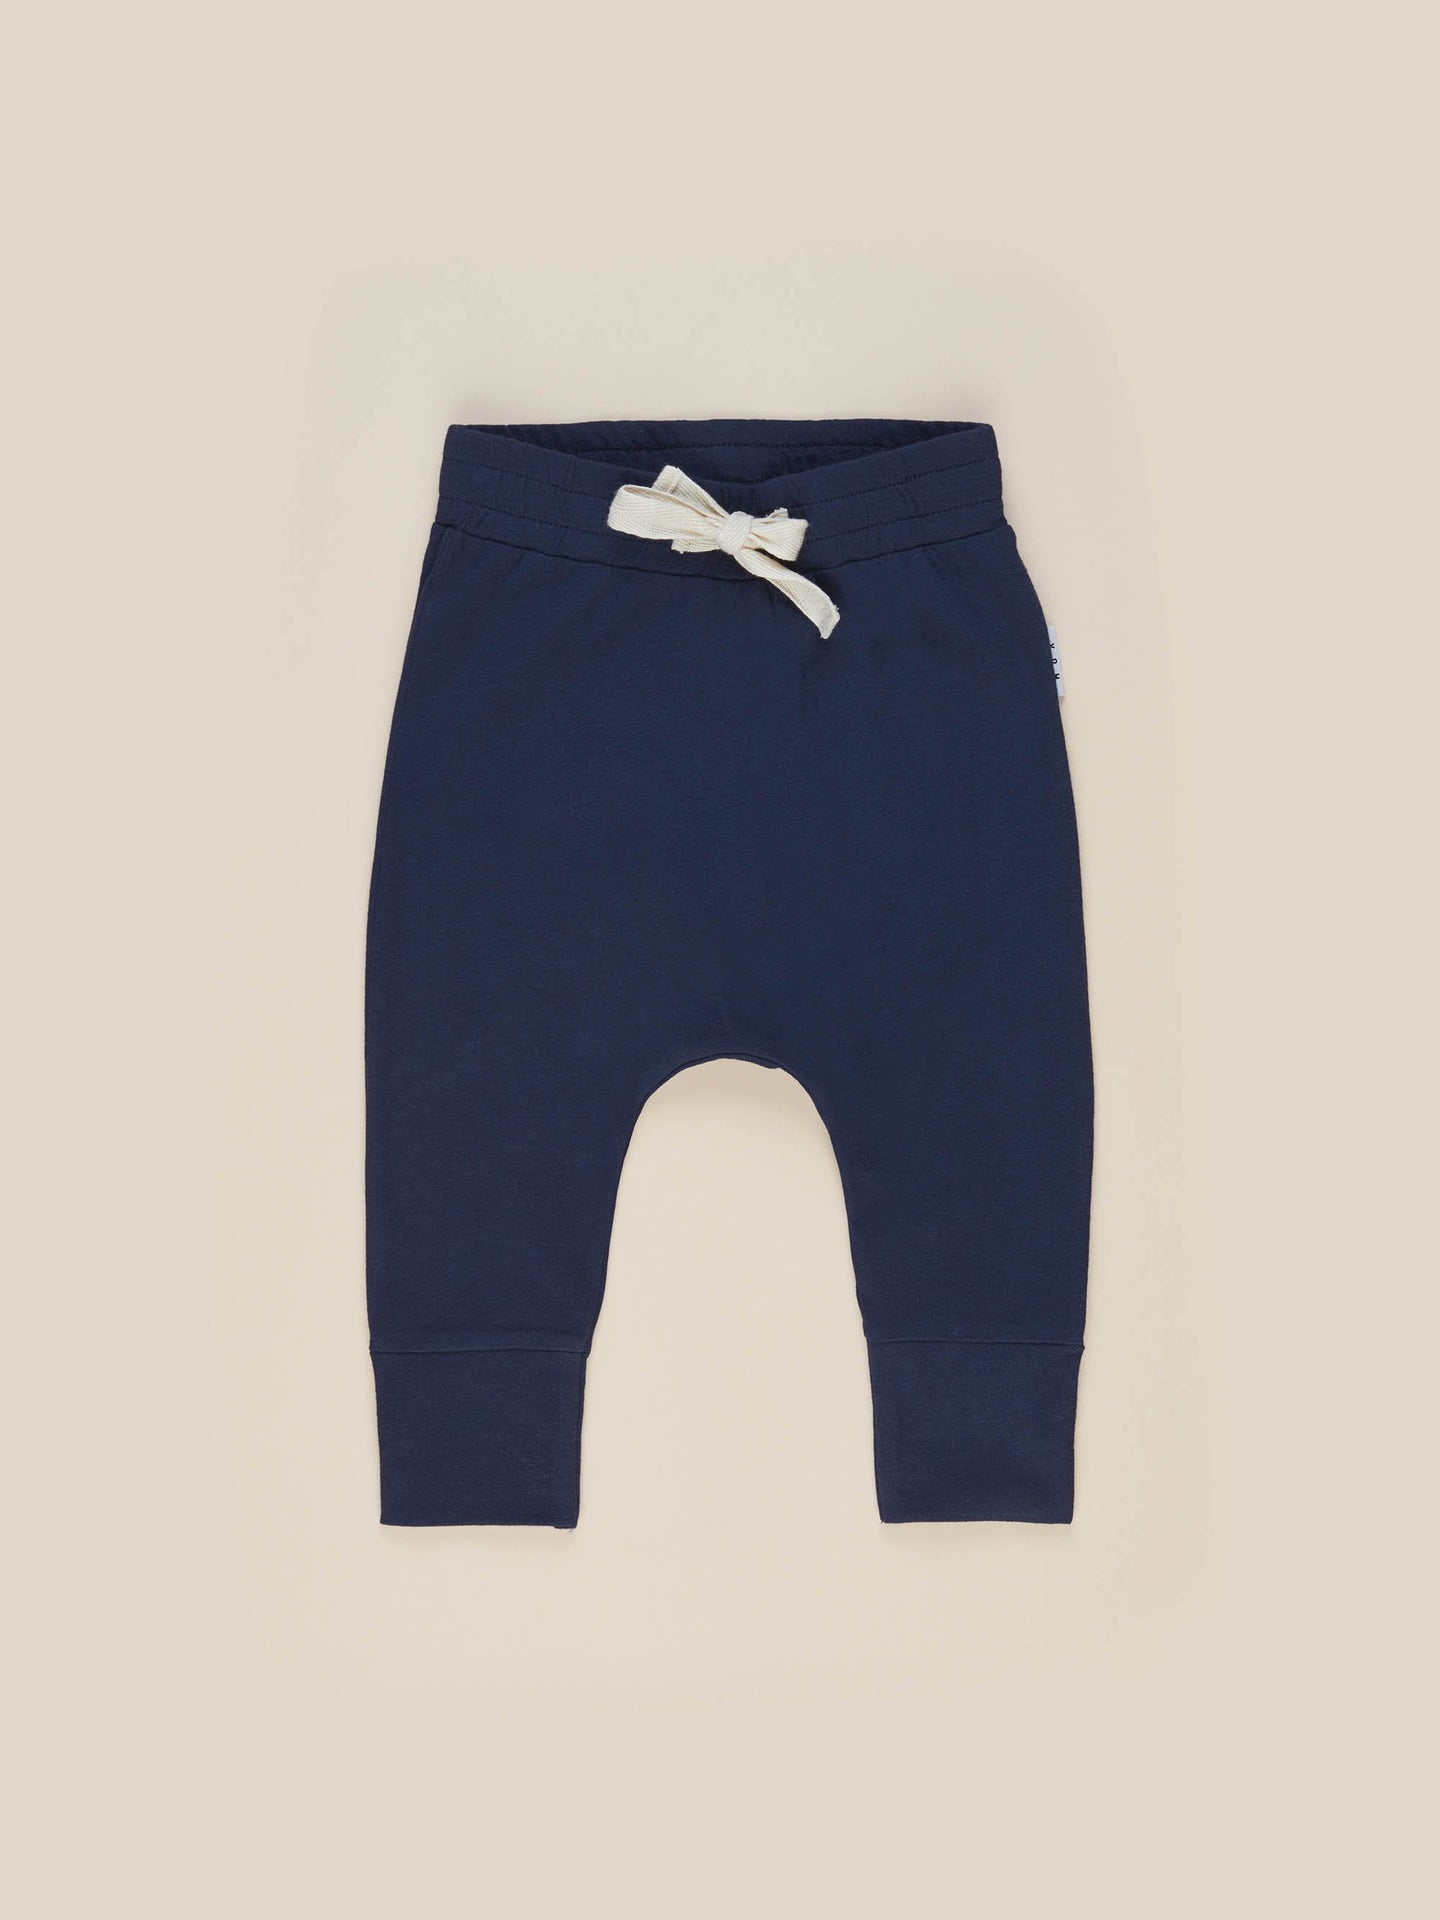 NAVY DROP CROTCH PANT